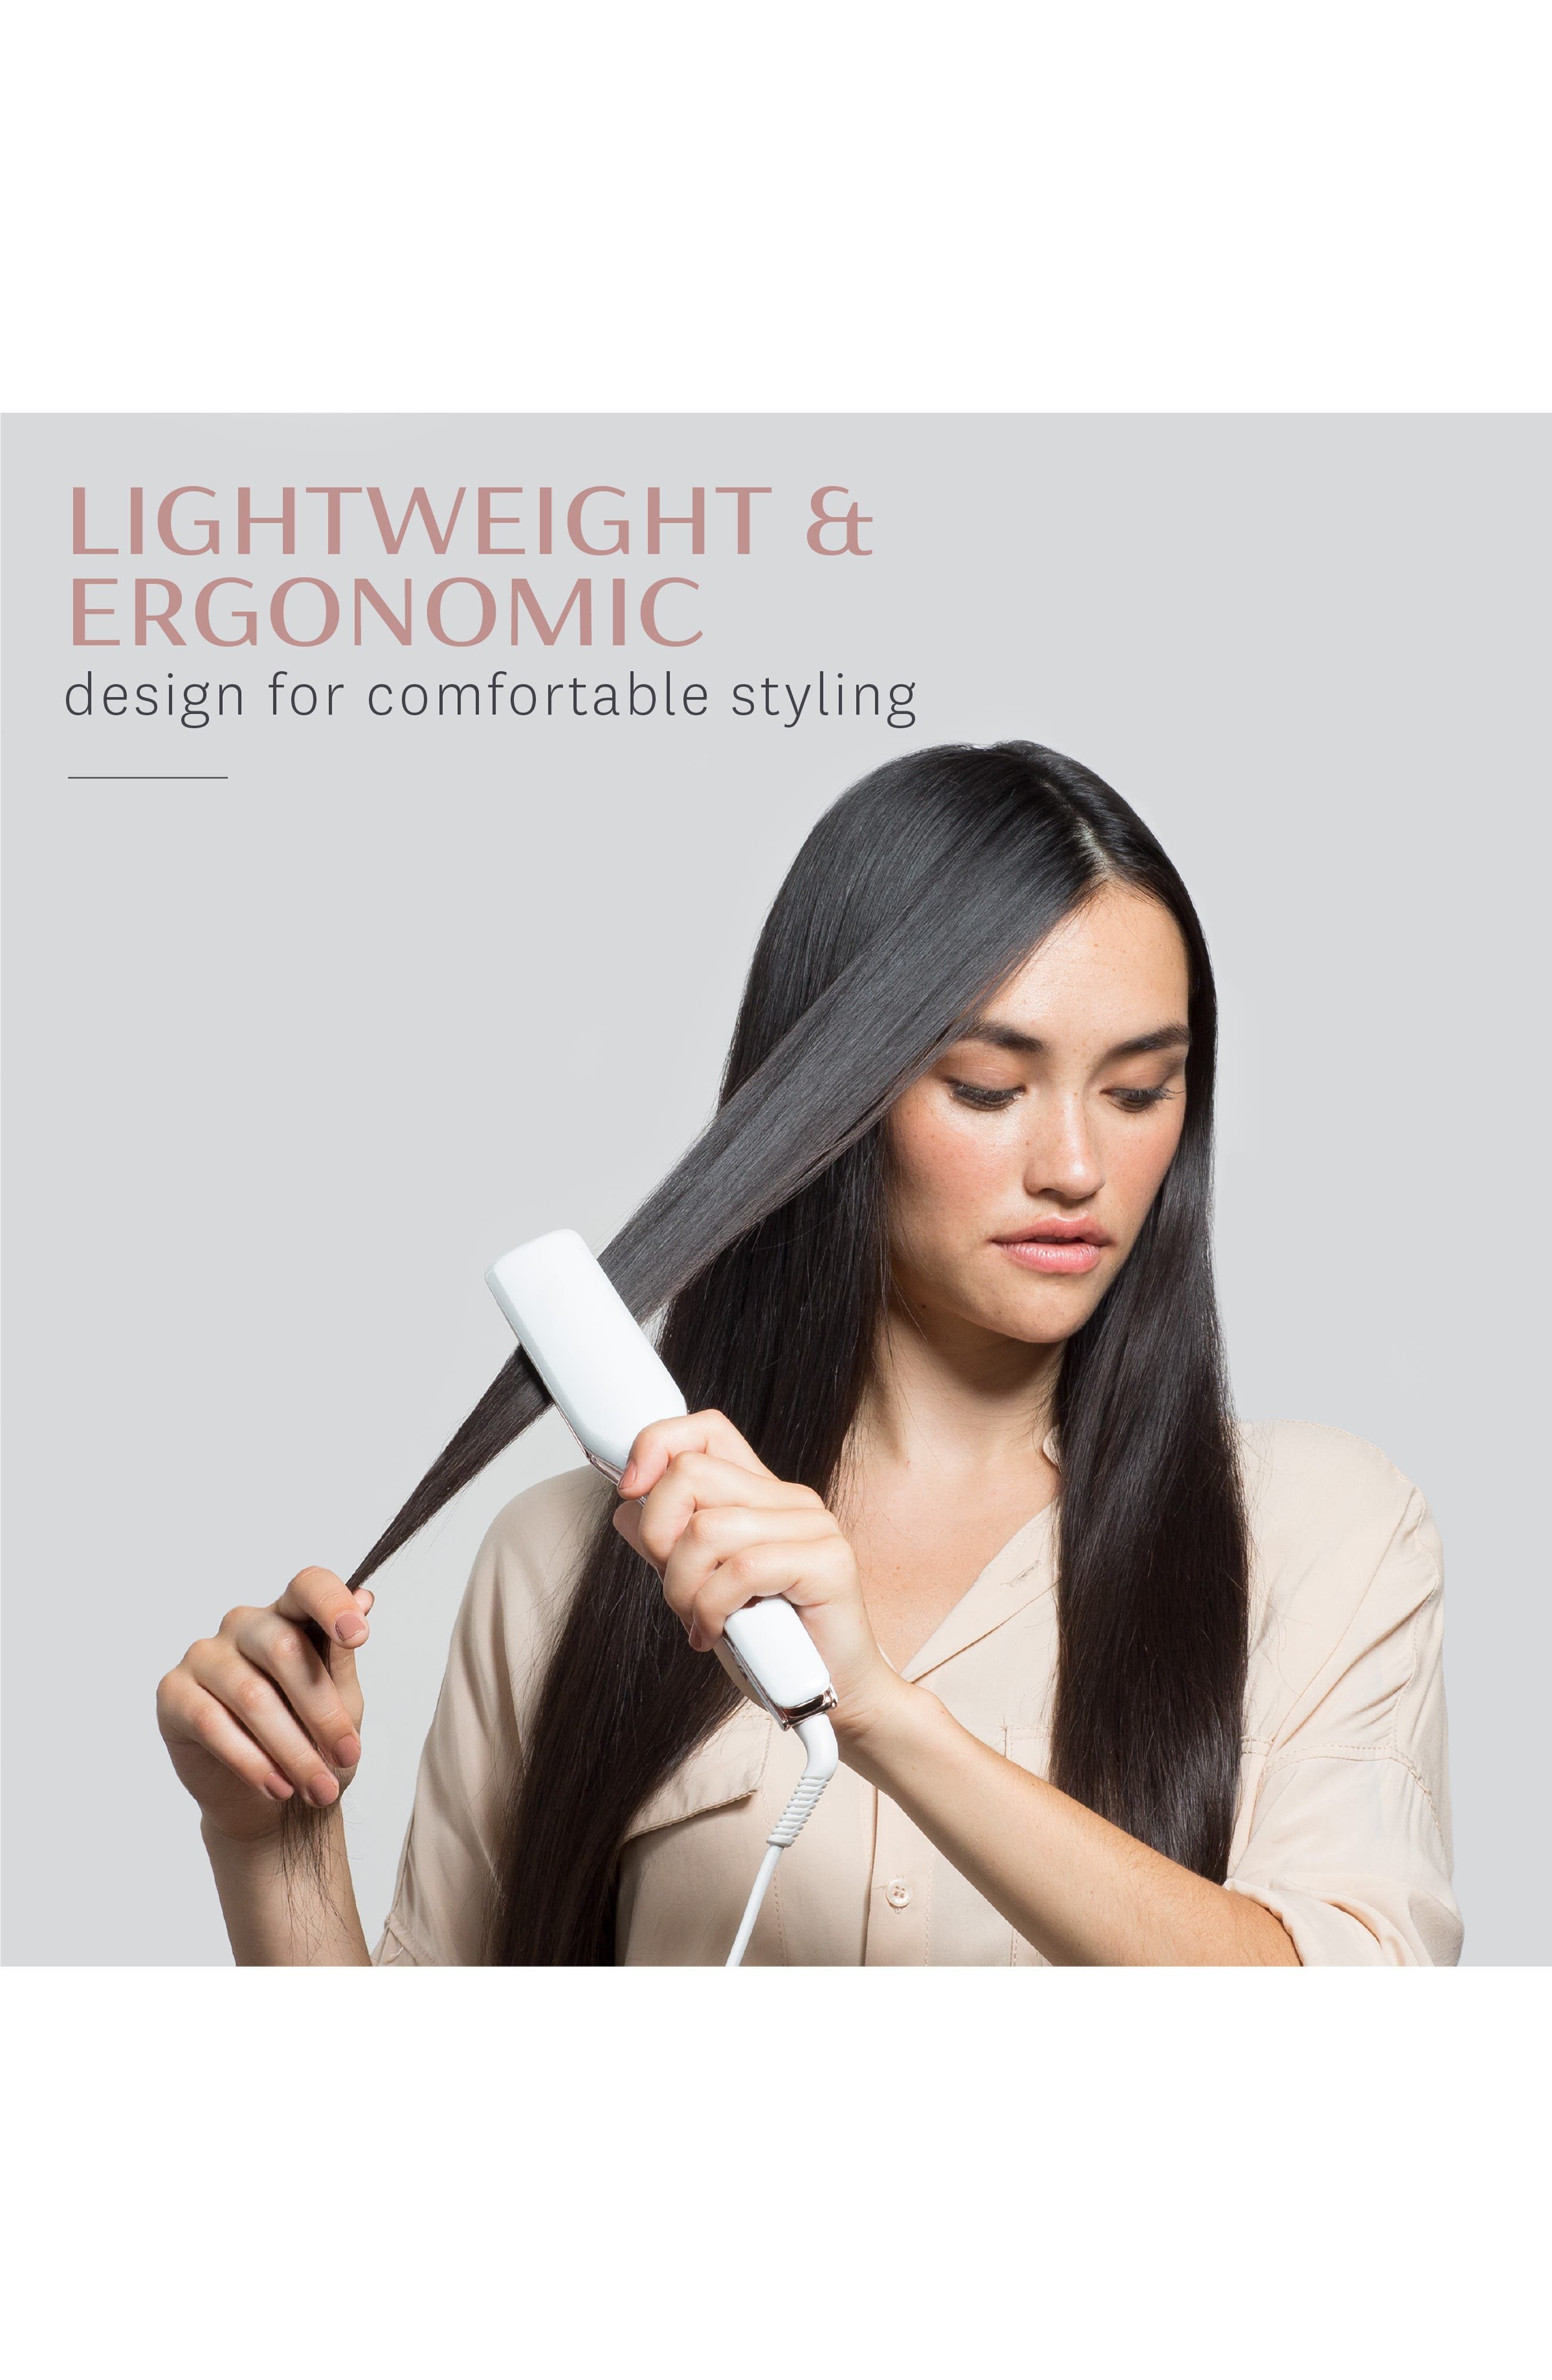 SinglePass X 1.5-Inch Ionic Flat Iron with Ceramic Plates,                             Alternate thumbnail 4, color,                             NO COLOR